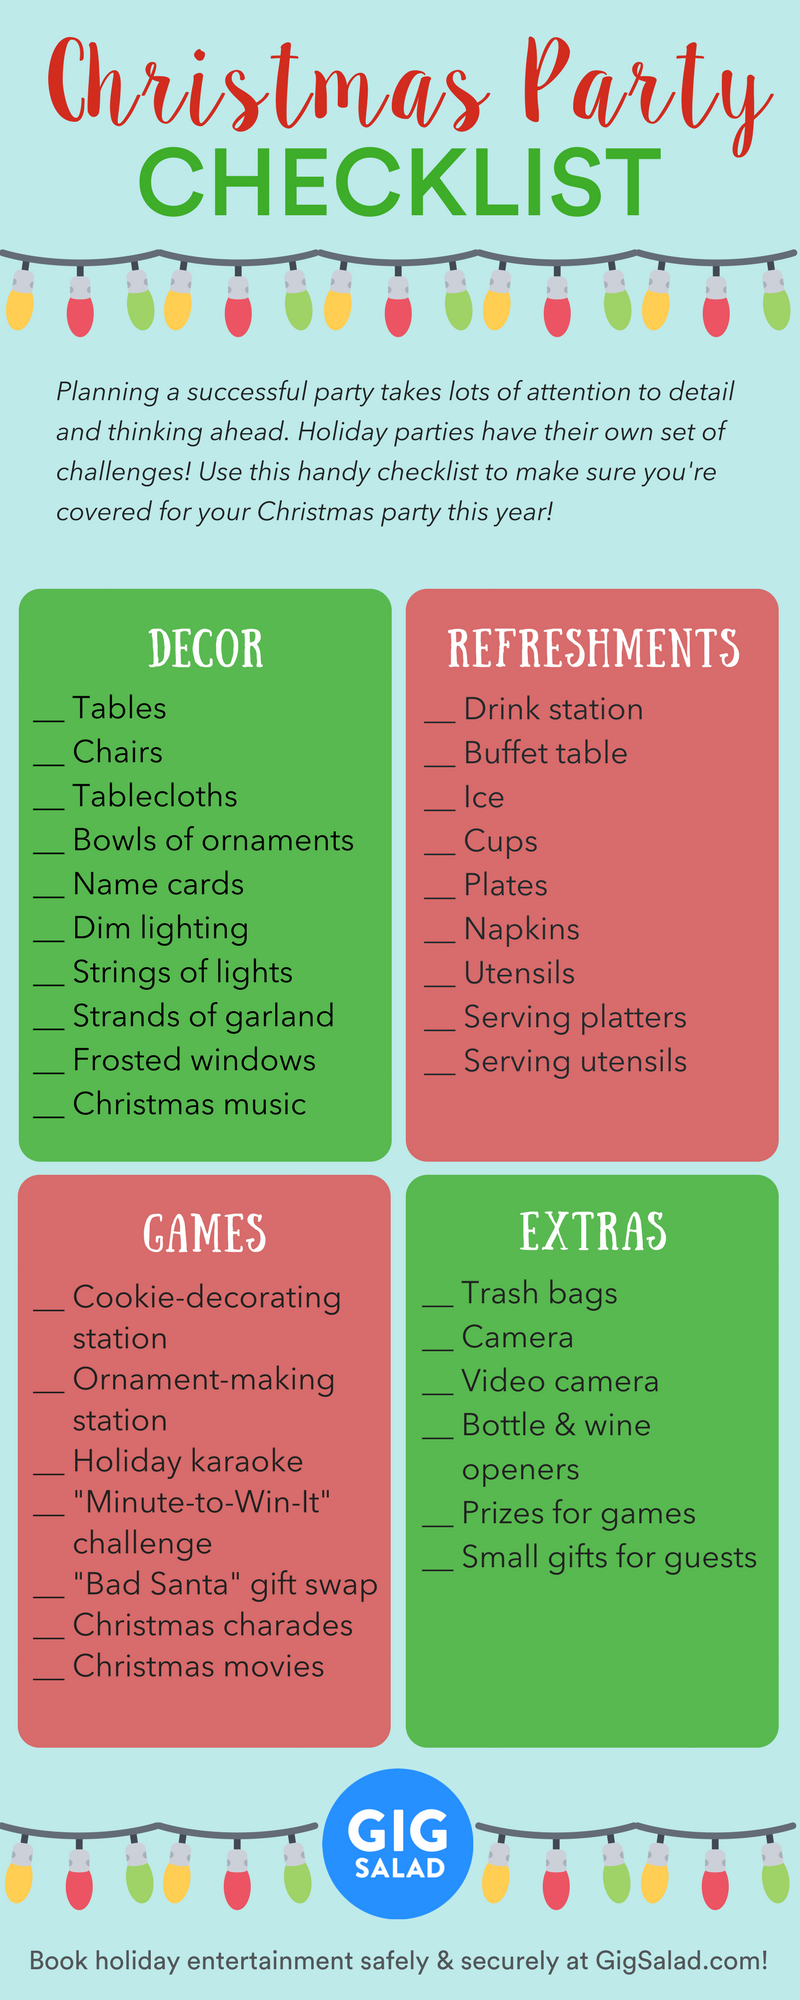 Christmas Party Planning.Use This Handy Christmas Party Planning Checklist To Make Sure Your